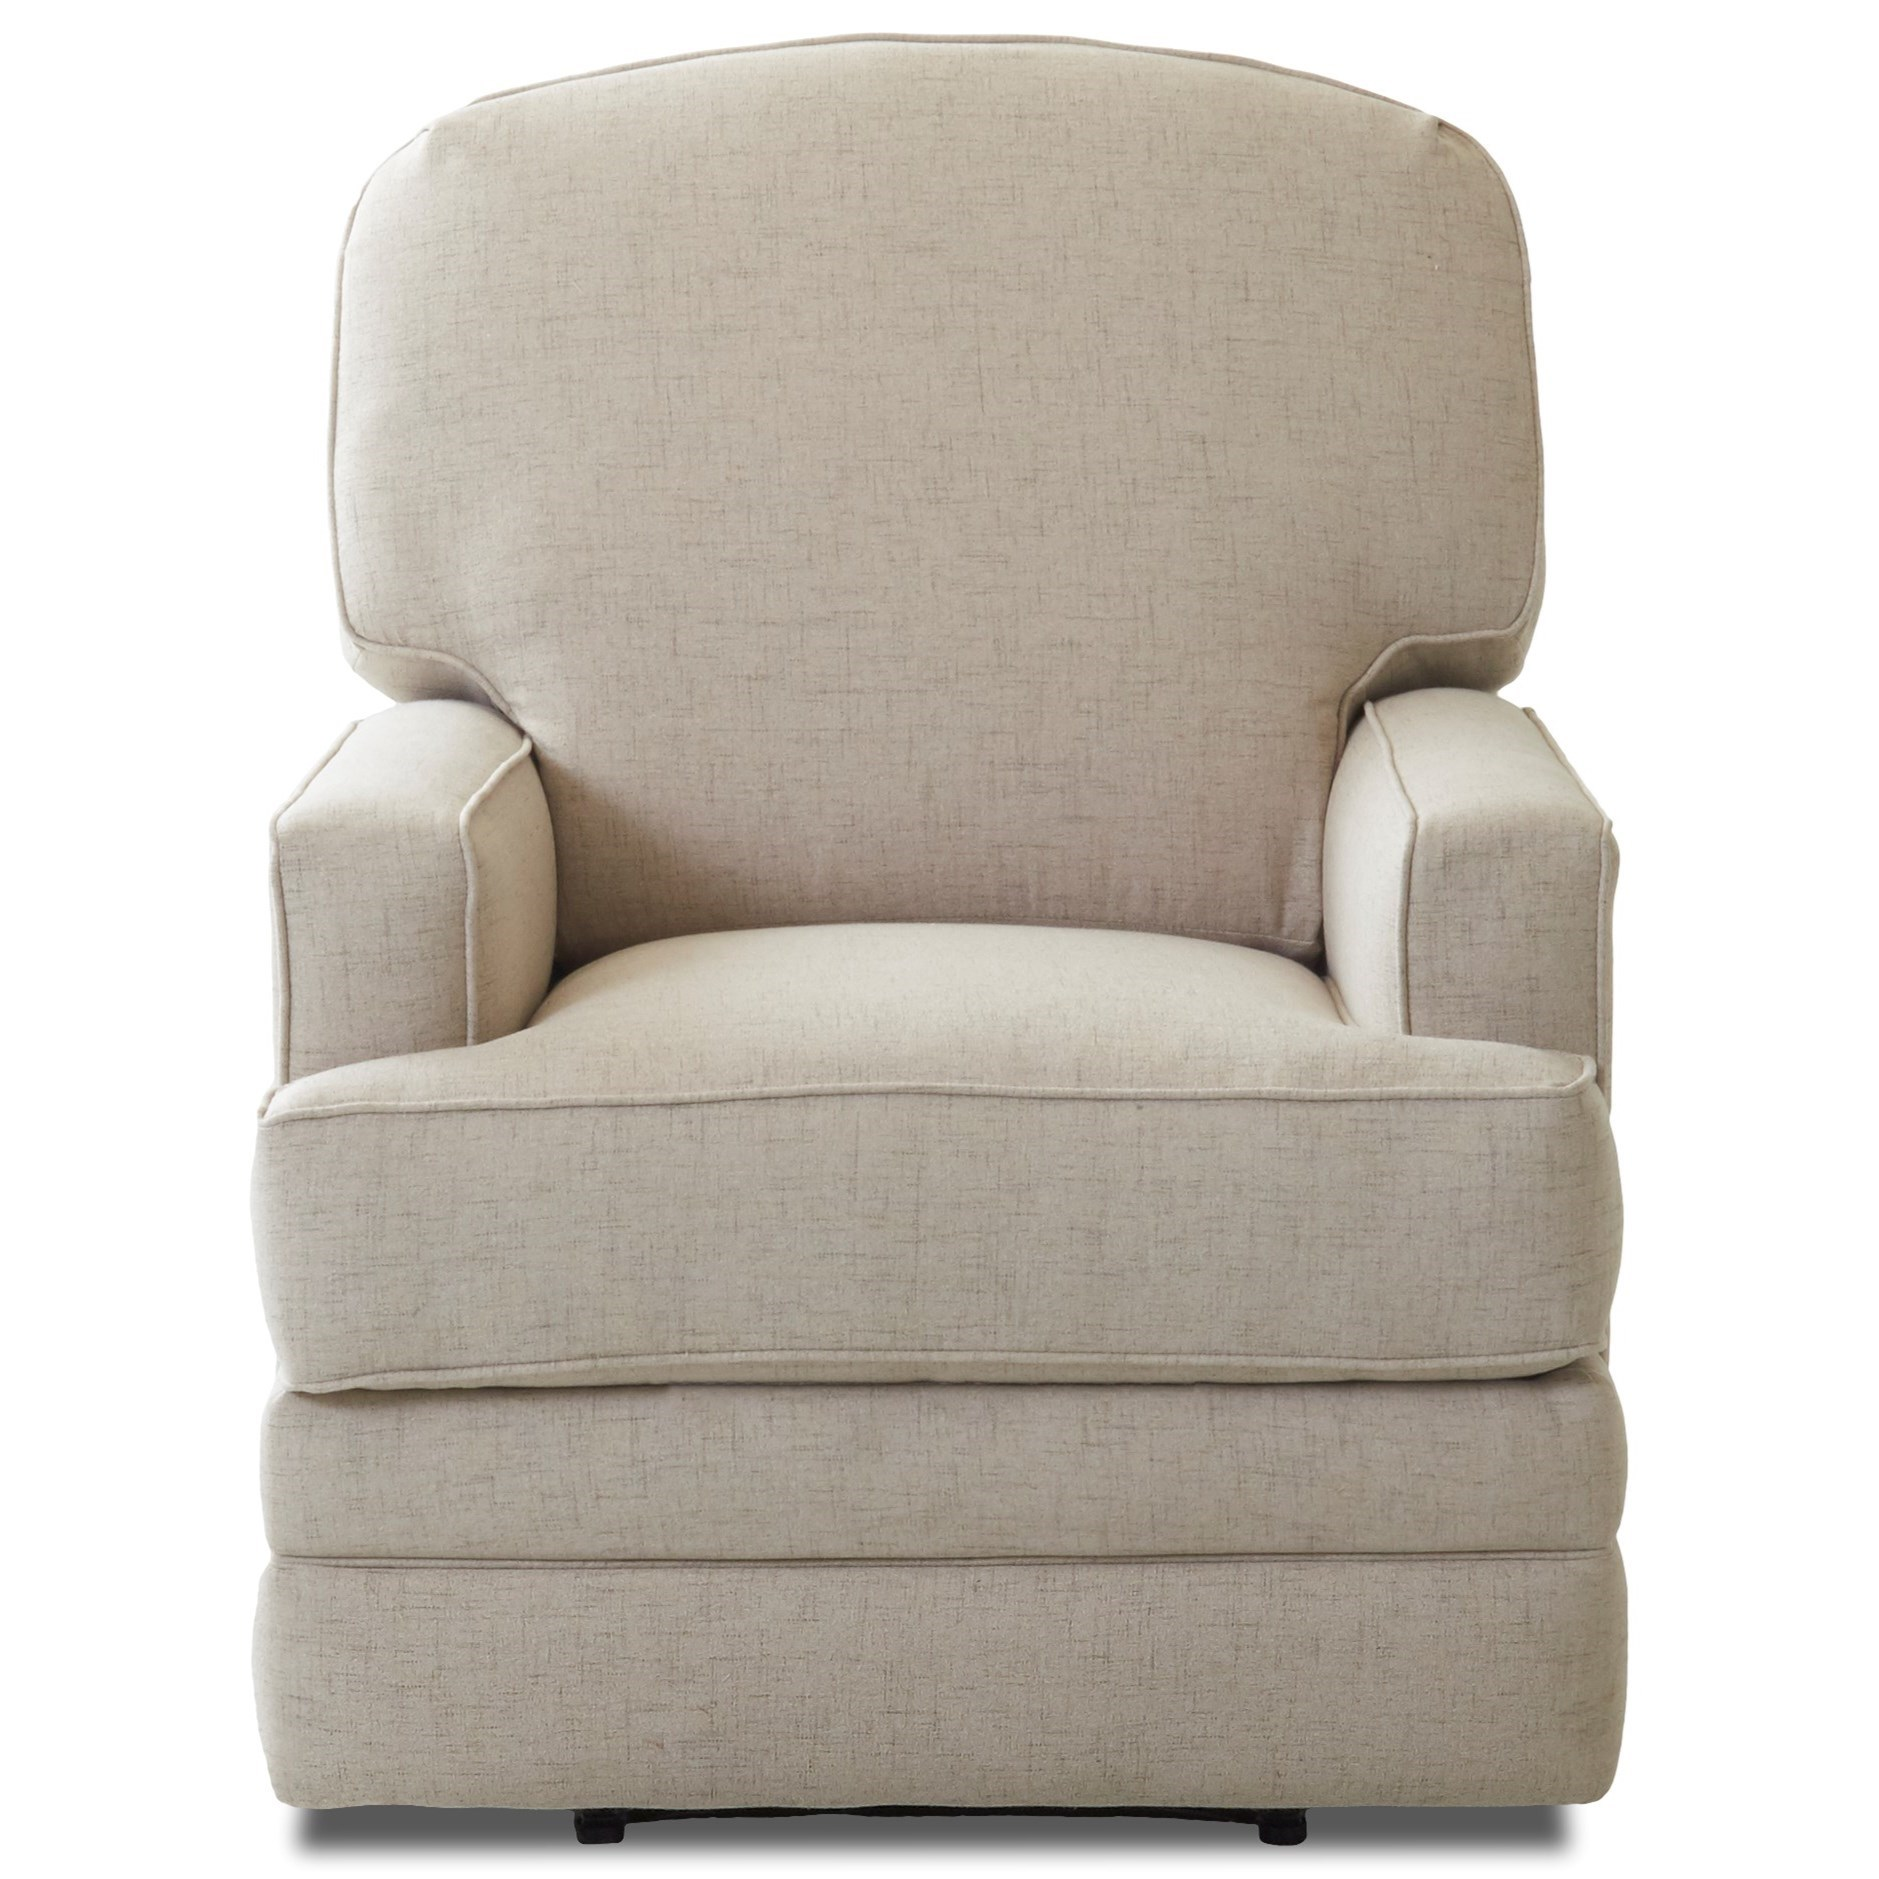 Chapman Casual Swivel Rocking Reclining Chair by Klaussner at H.L. Stephens